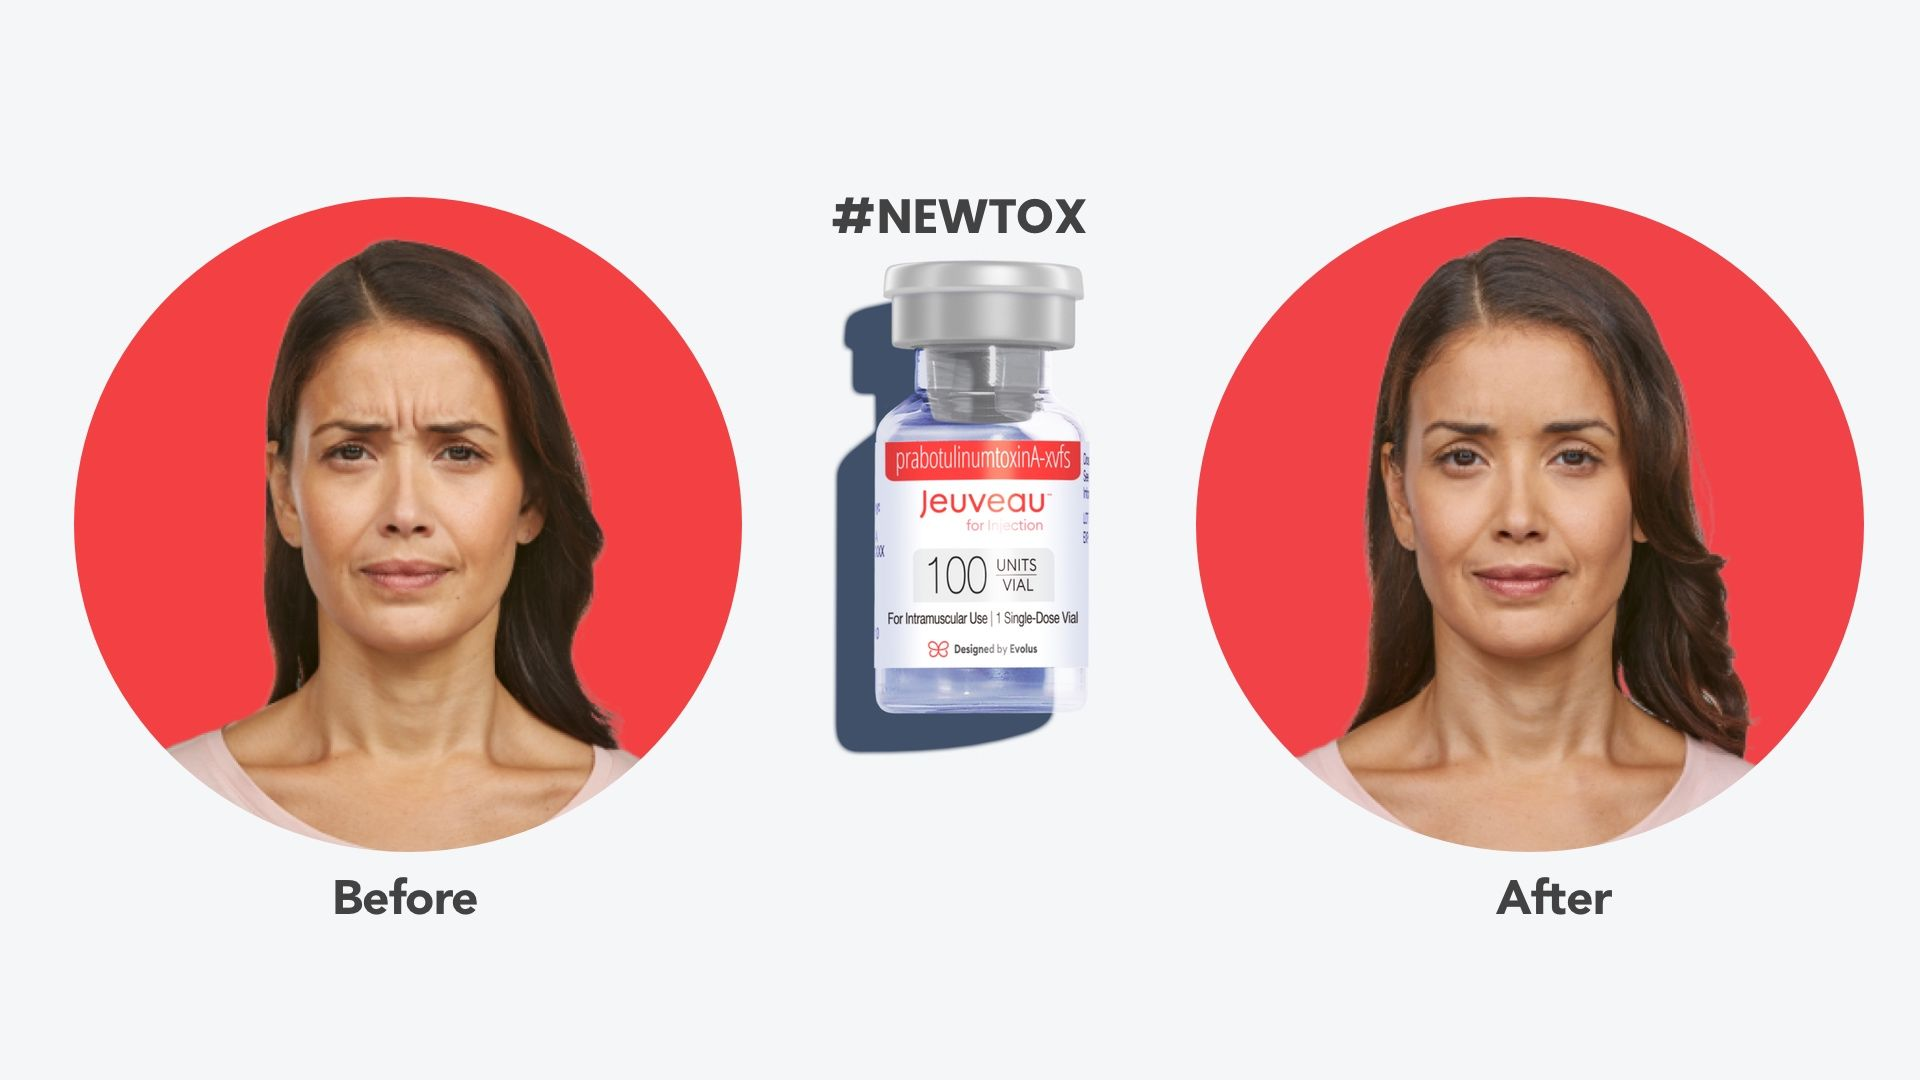 jeuveau-newtox-before-after